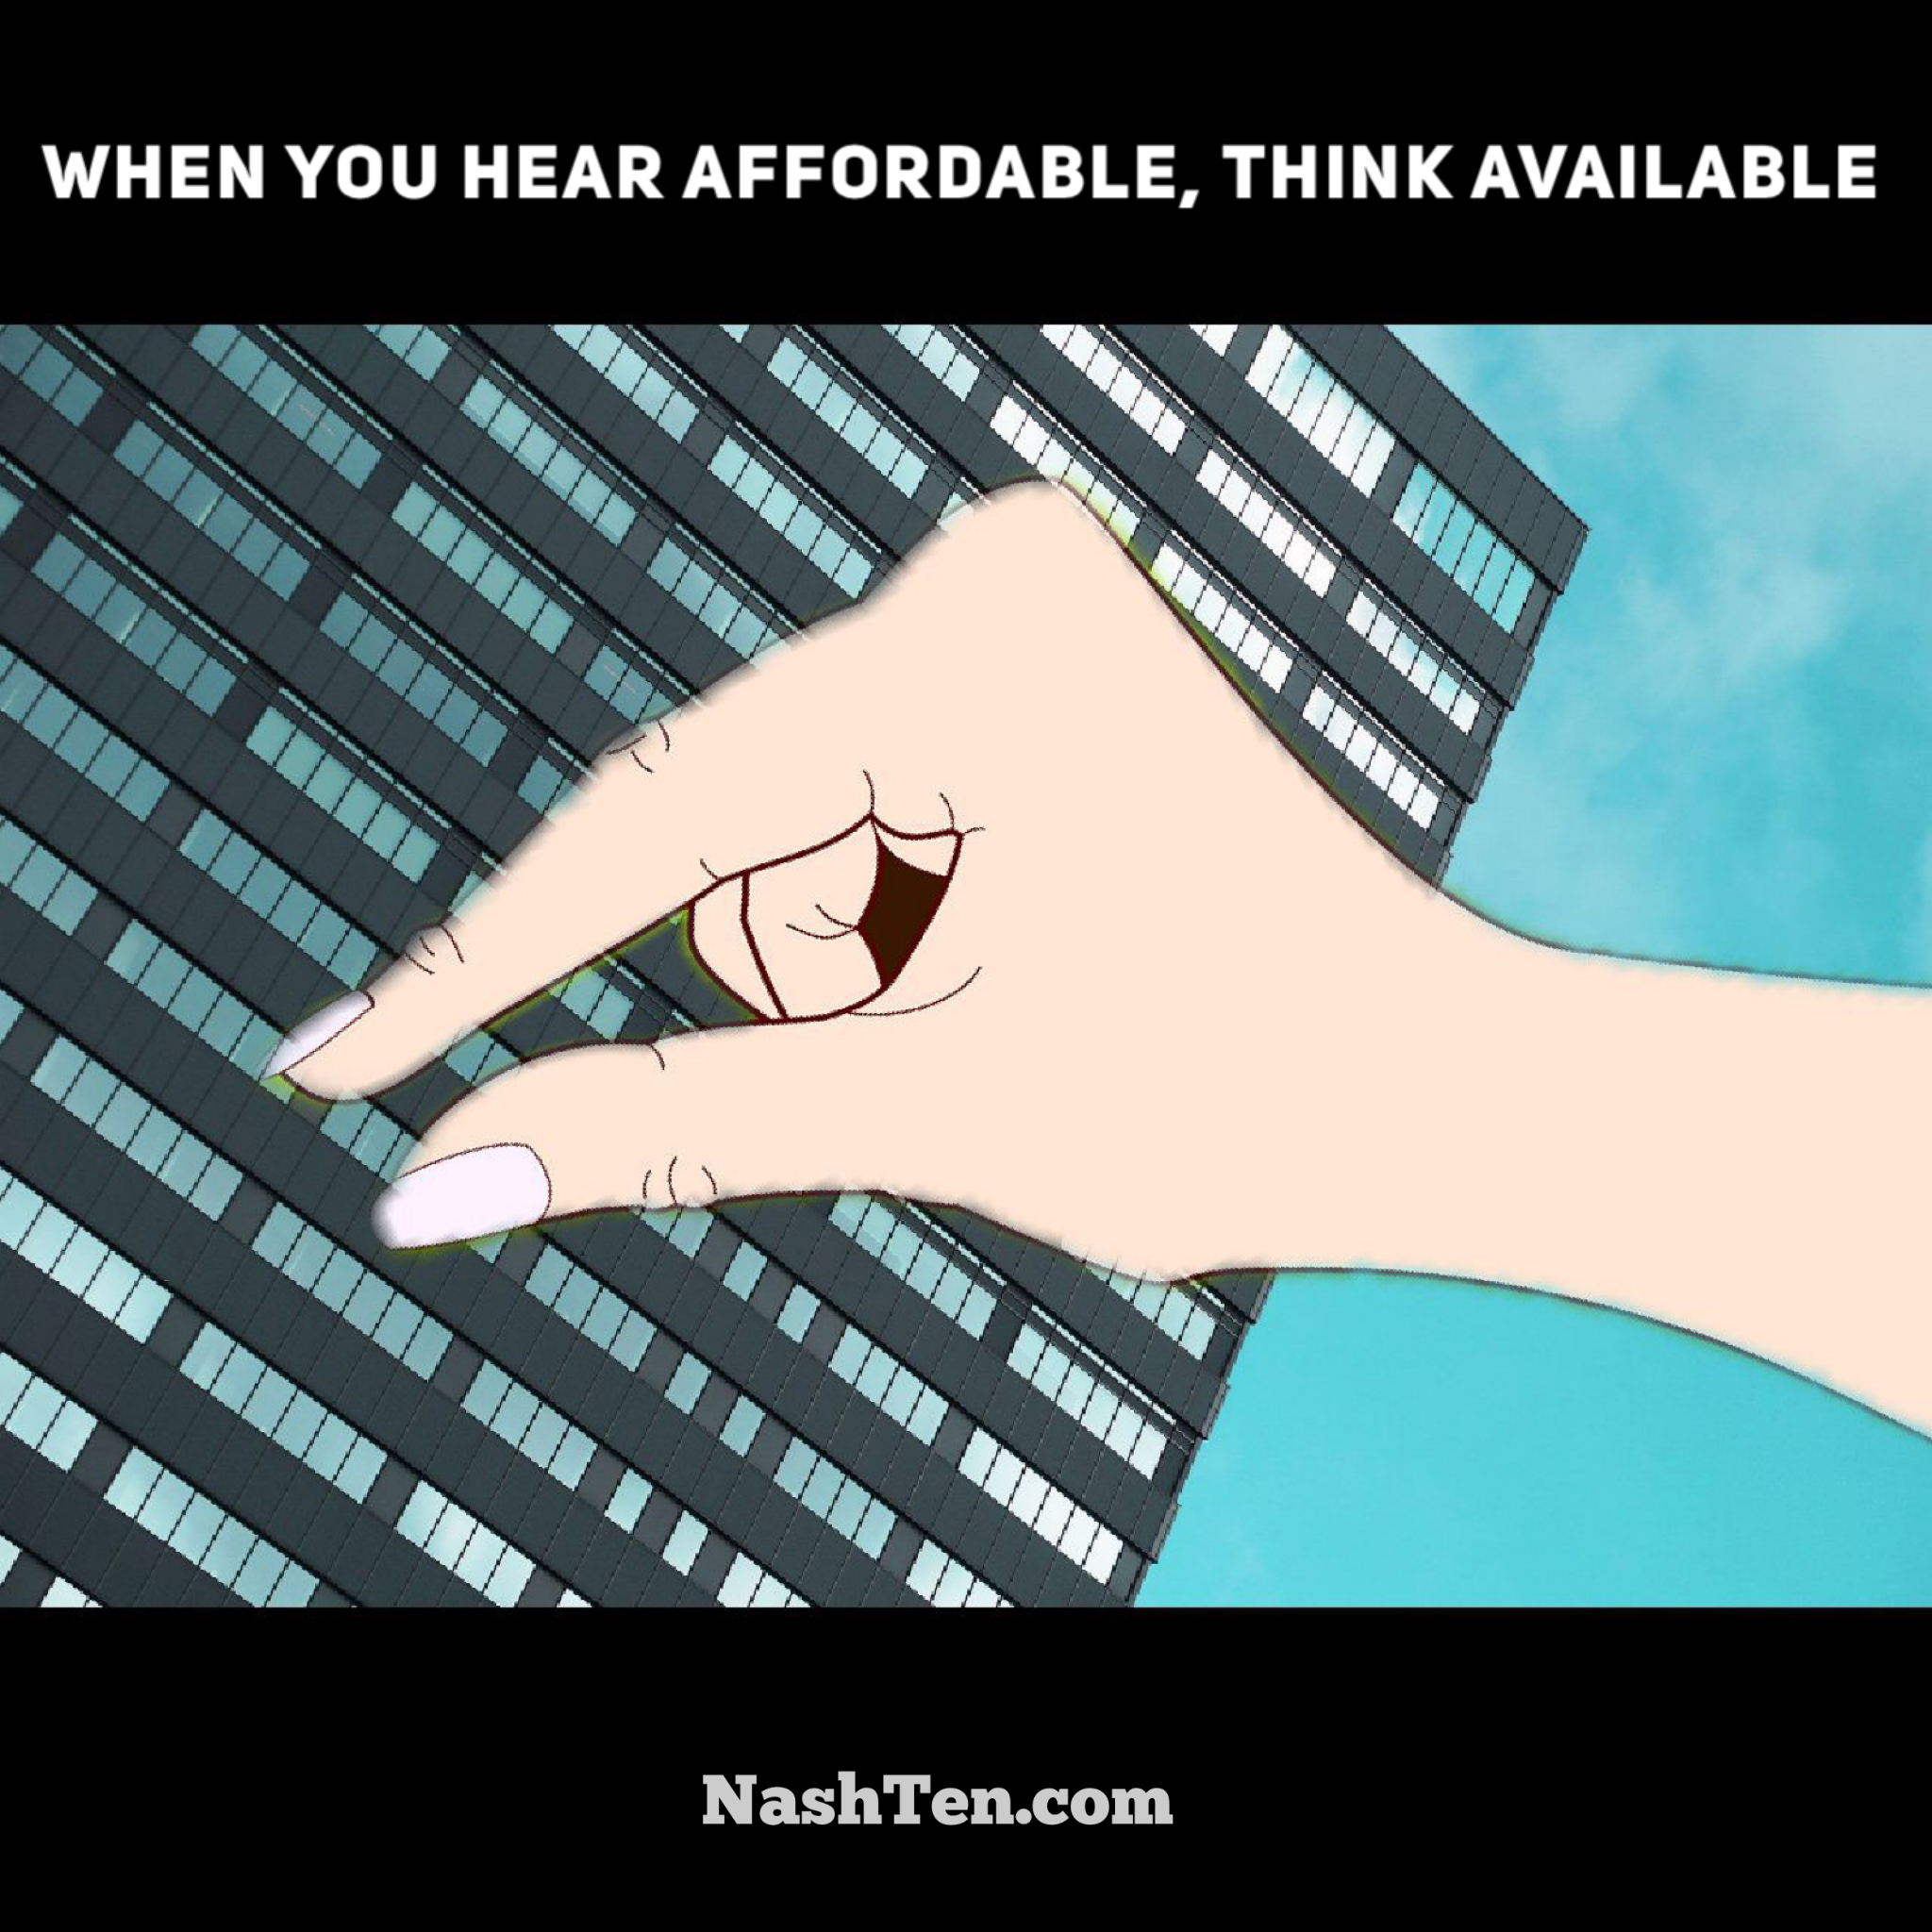 When you hear affordable, think available